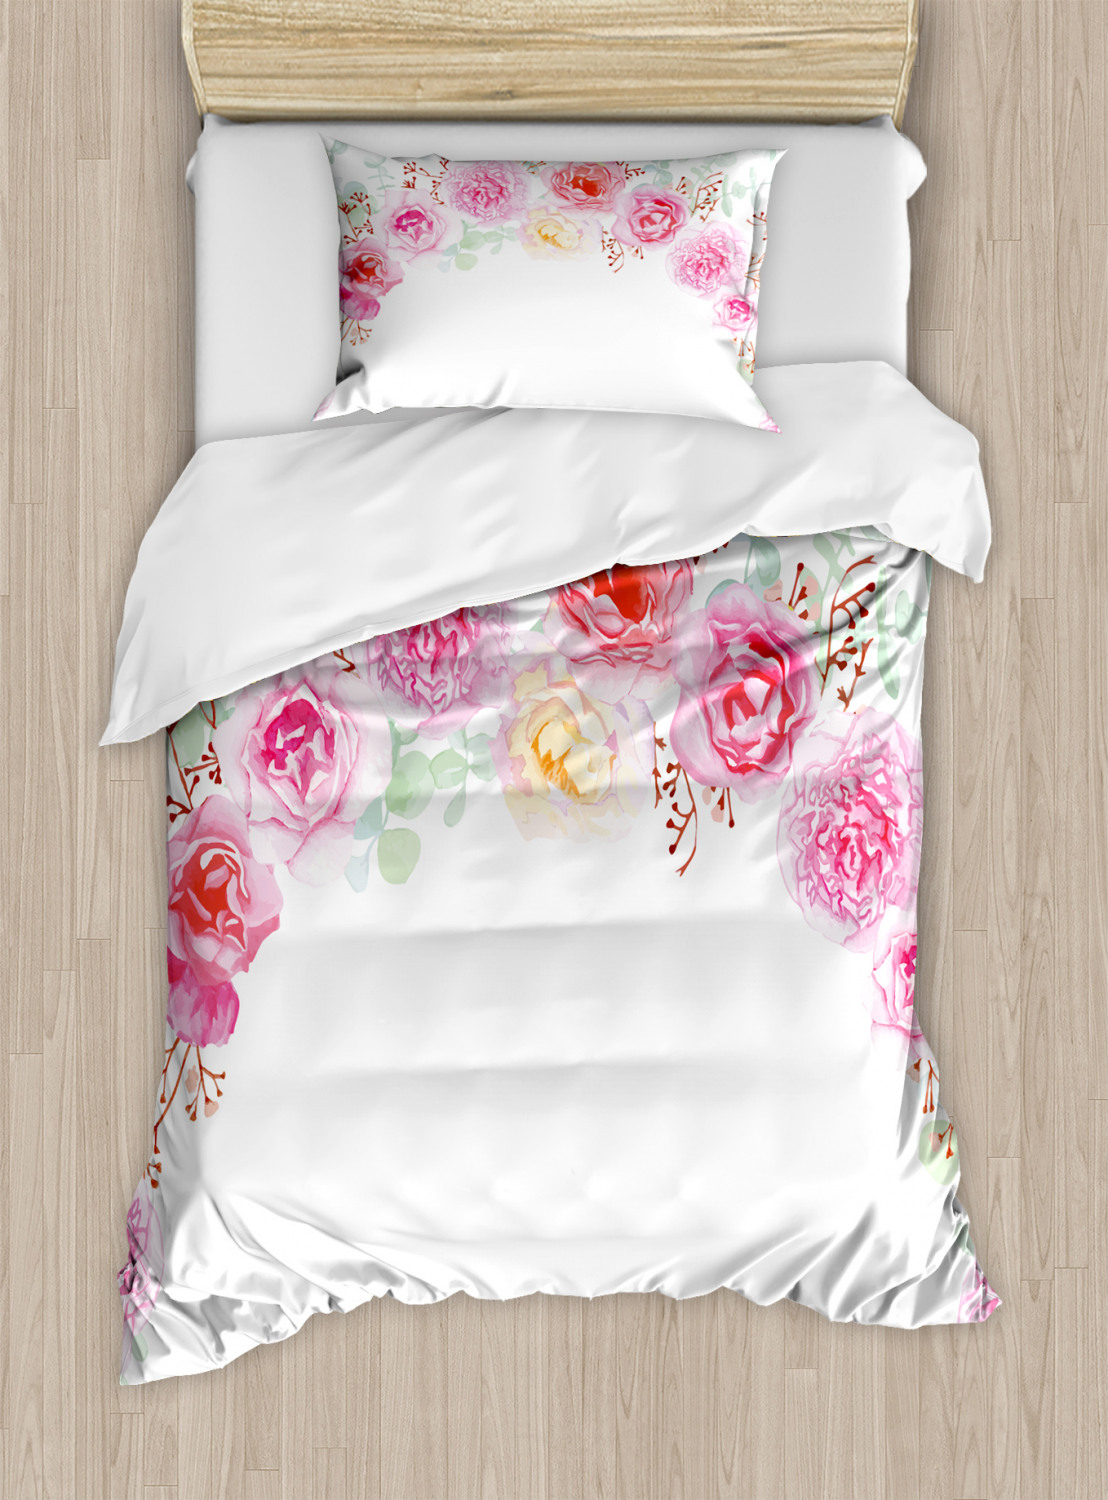 Shabby Chic Duvet Cover Set Floral Wreath In Half Blossoming Romantic Bridal Roses Peonies Feminine Design Decorative Bedding Set With Pillow Shams Multicolor By Ambesonne Walmart Com Walmart Com